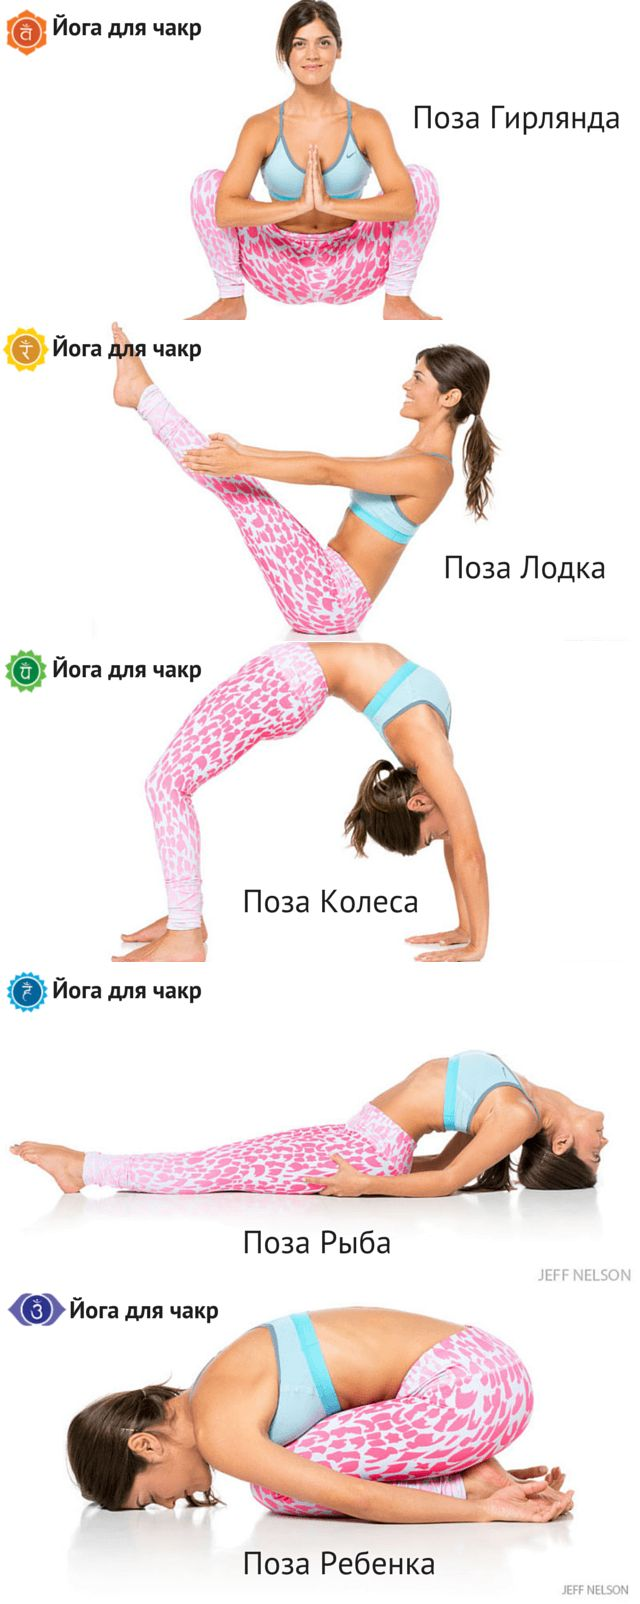 Yoga asana, yoga posture, pranayama, yoga pose, healing, yoga tips, yoga retreat, yoga benefit, yoga, asana